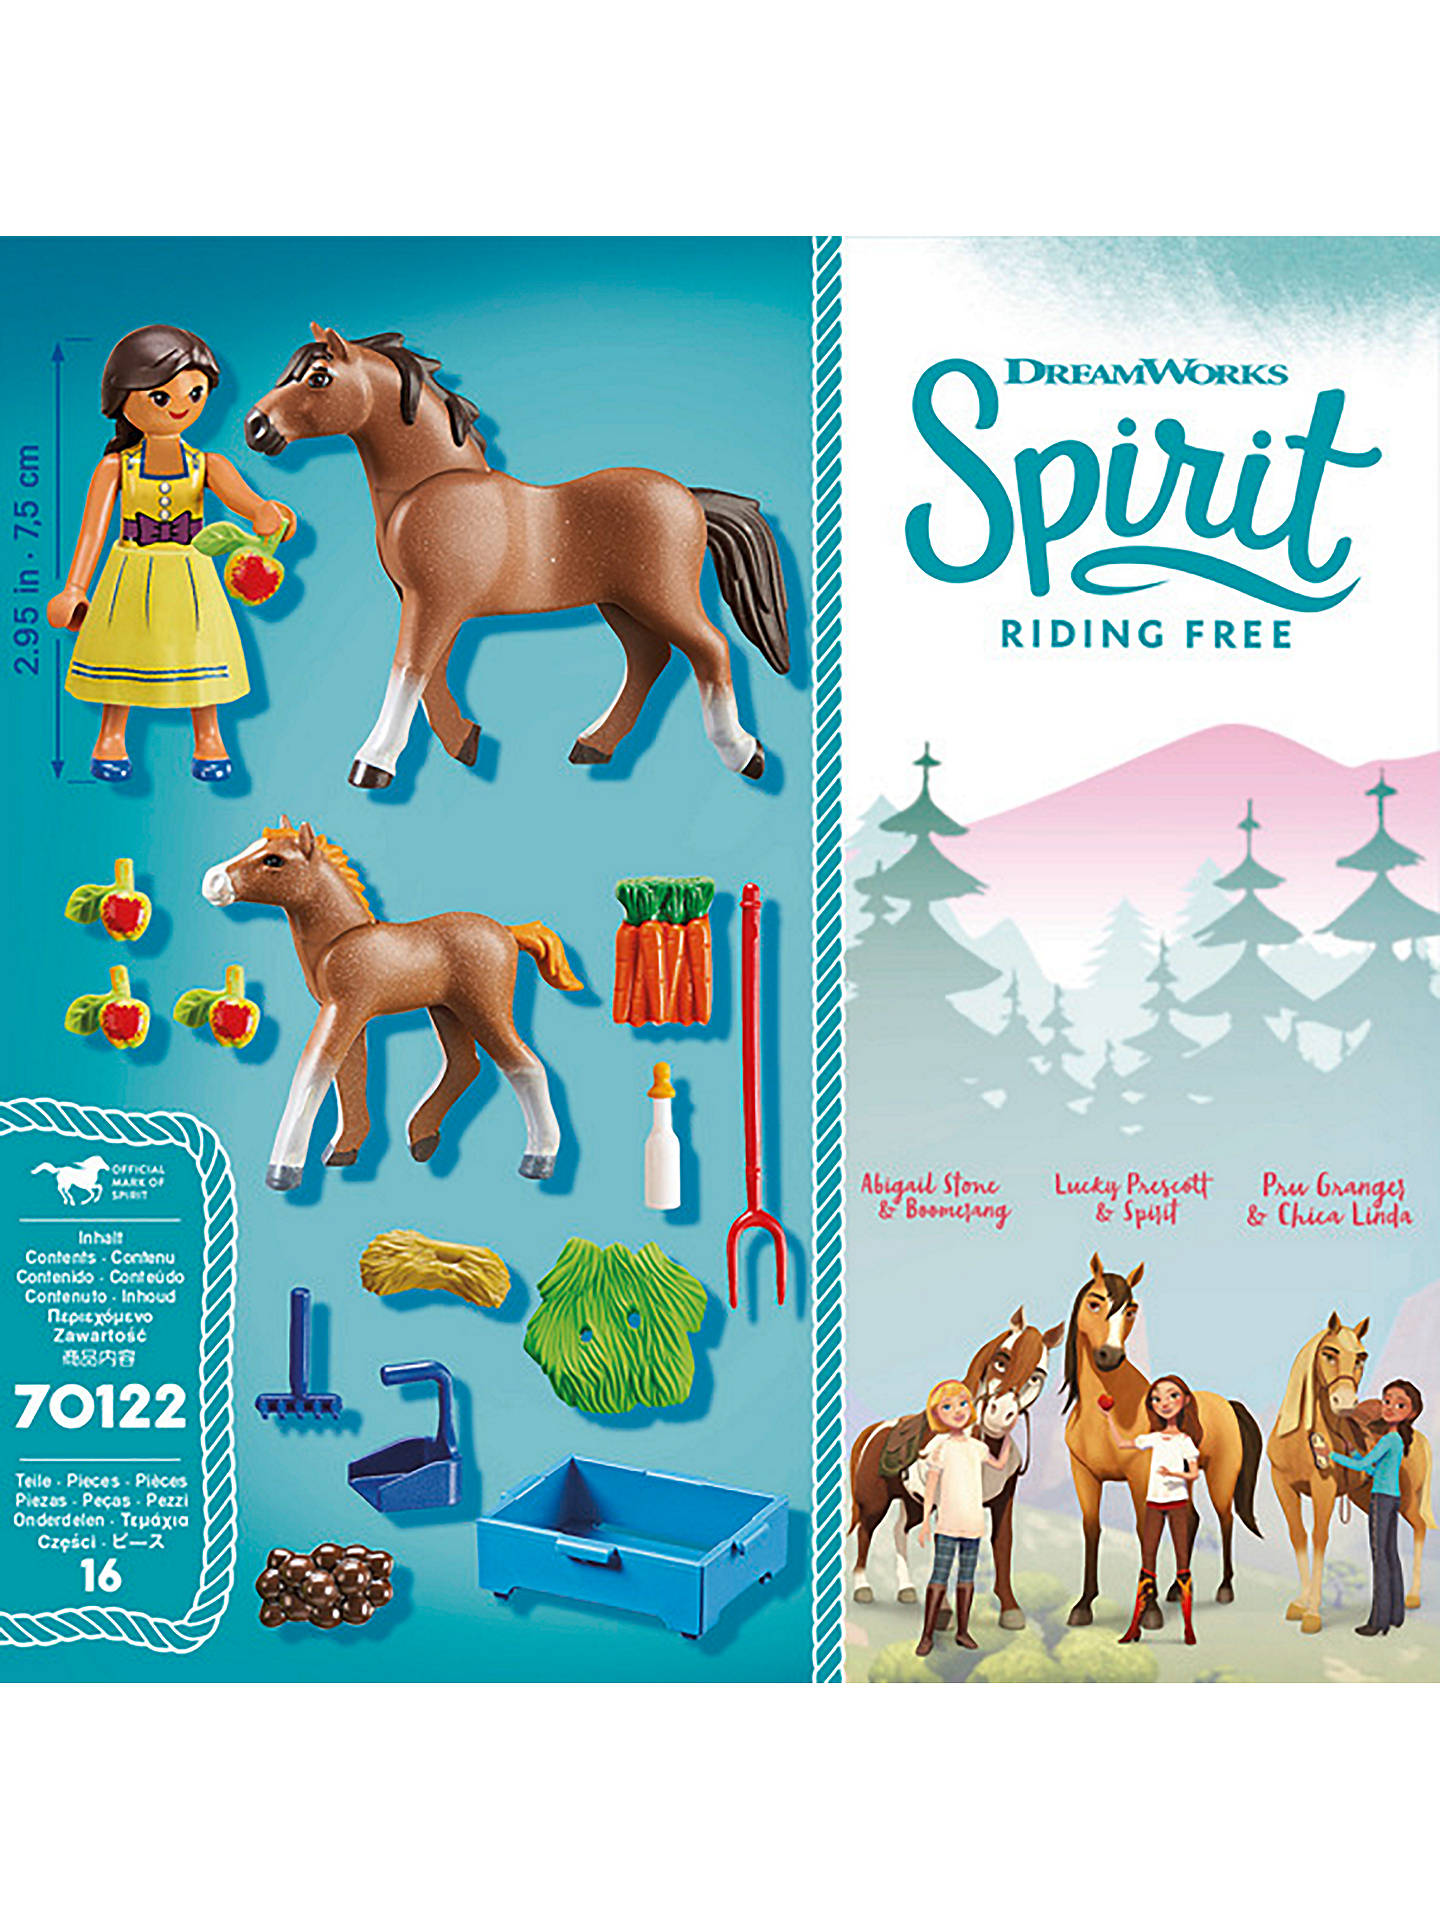 Playmobil Dreamworks Spirit Riding Free 70122 Pru With Horse And